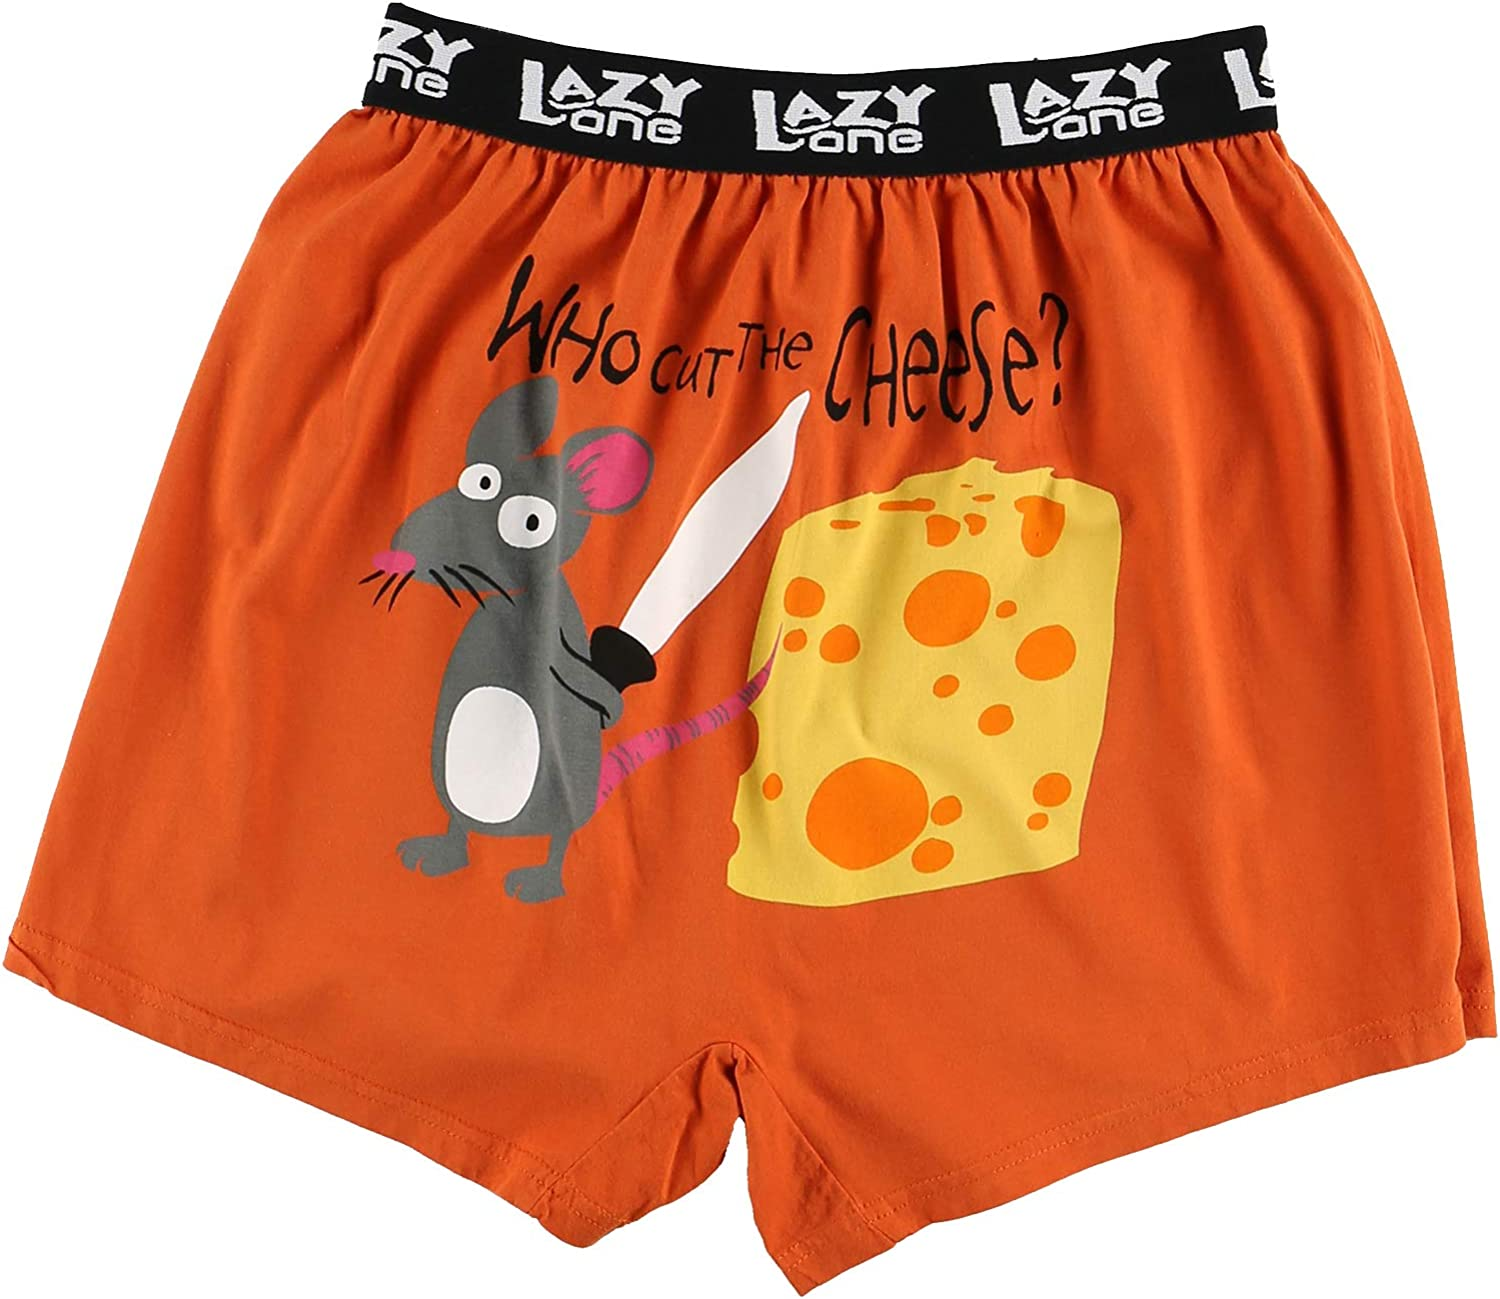 Funny Mens Boxers Small Who Cut The Cheese Soft Comical Boxers for Men by LazyOne